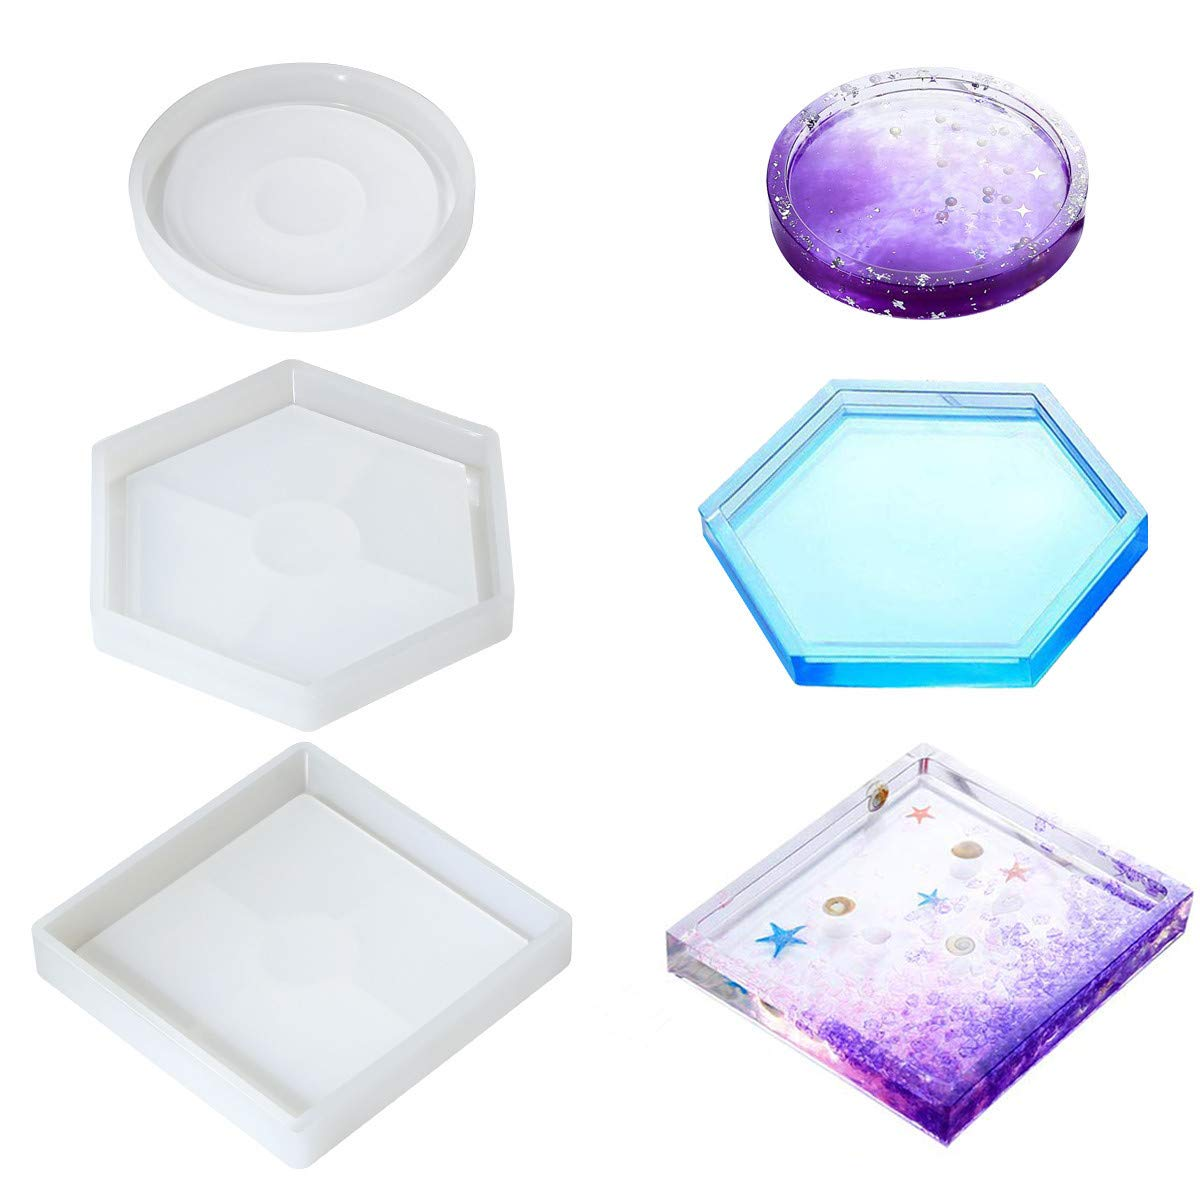 3 Pack DIY Coaster Silicone Molds for Resin, Epoxy Resin Molds Ashtray for Casting Eco-Friendly Sturdy Hexagon Square Round Mold Bottom Bracket for Casting with Resin,Concrete,Cement